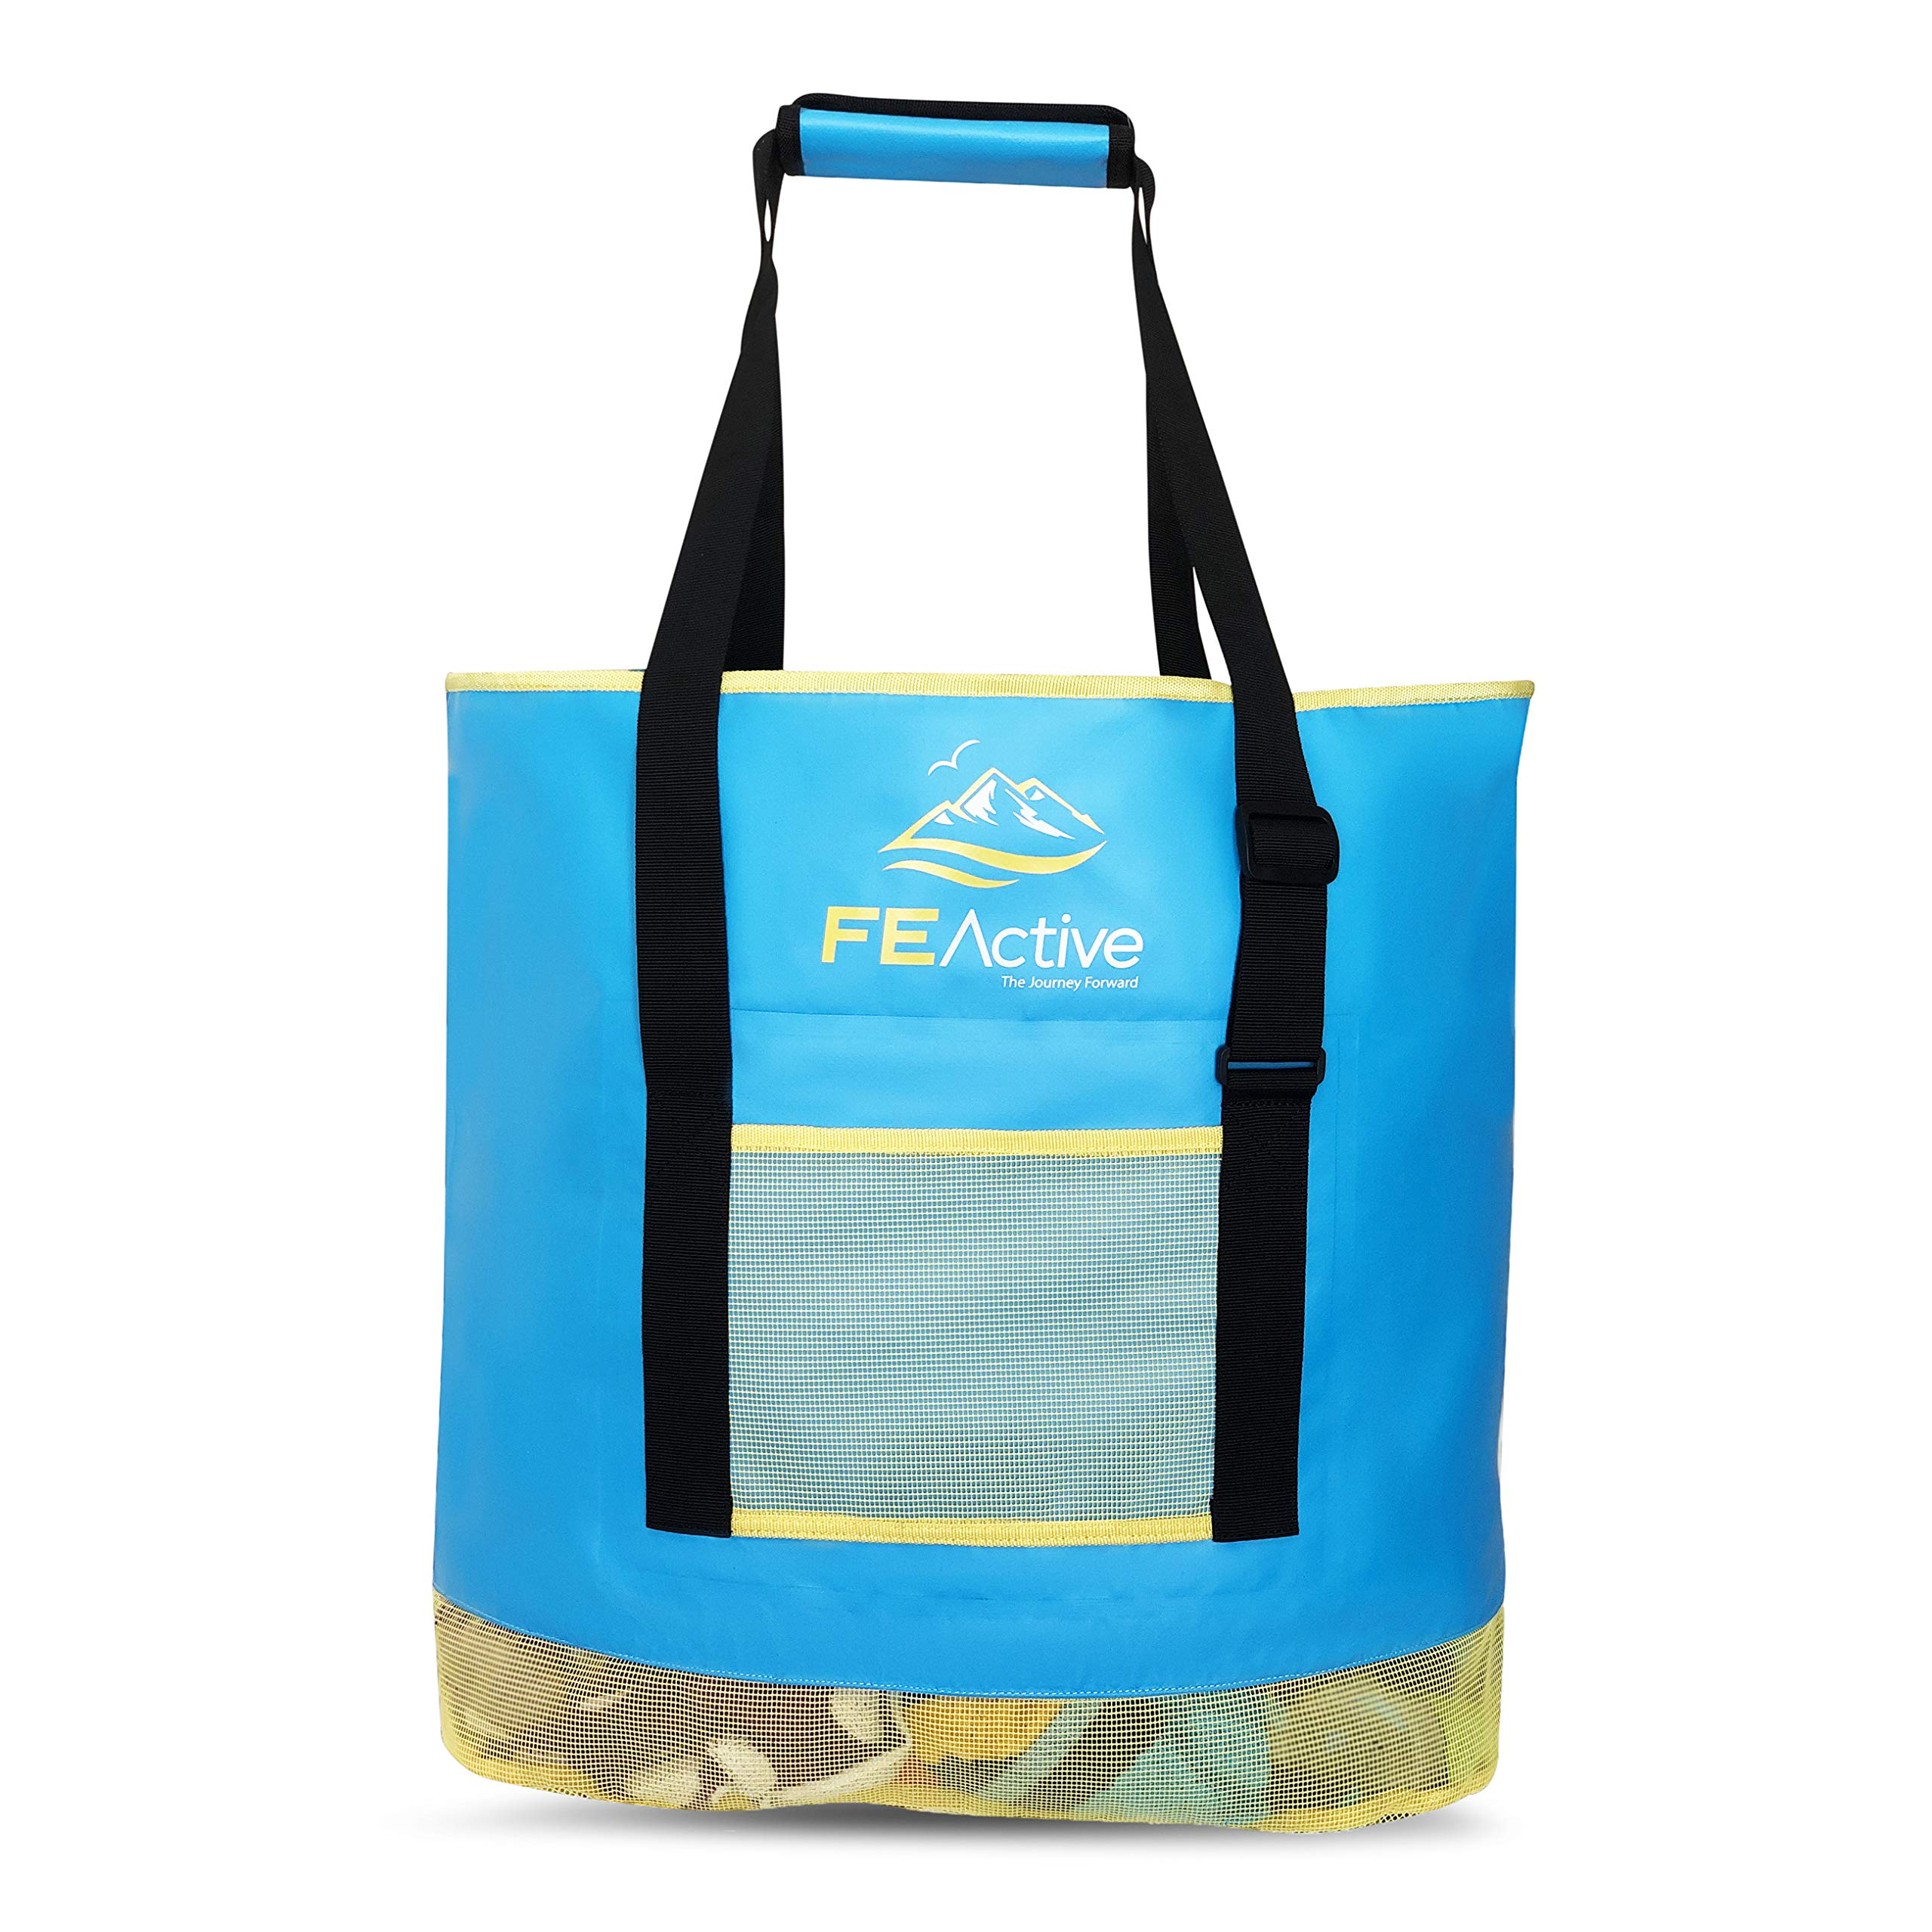 FE Active - 50 Liter Sand Free Bag Built With High-End Water Resistant Material and Designed As Oversize Sand-Free Tote Bag For The Beach and Camping   Designed in California, USA